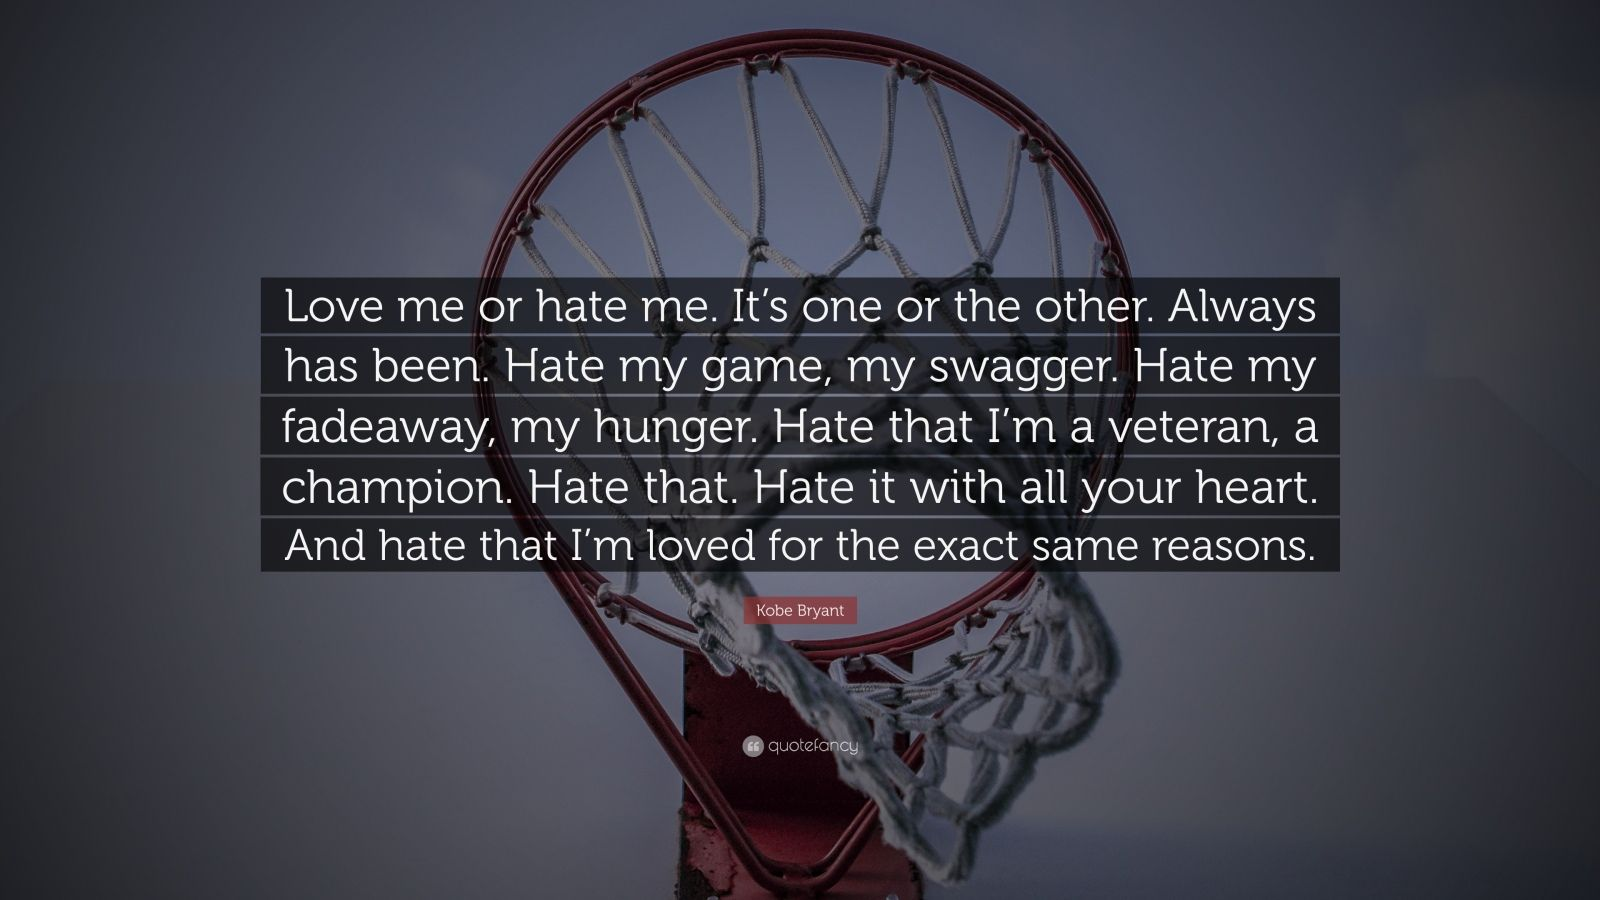 Love Me Or Hate Me Wallpaper For Mobile : Kobe Bryant Quote: ?Love me or hate me. It s one or the other. Always has been. Hate my game, my ...